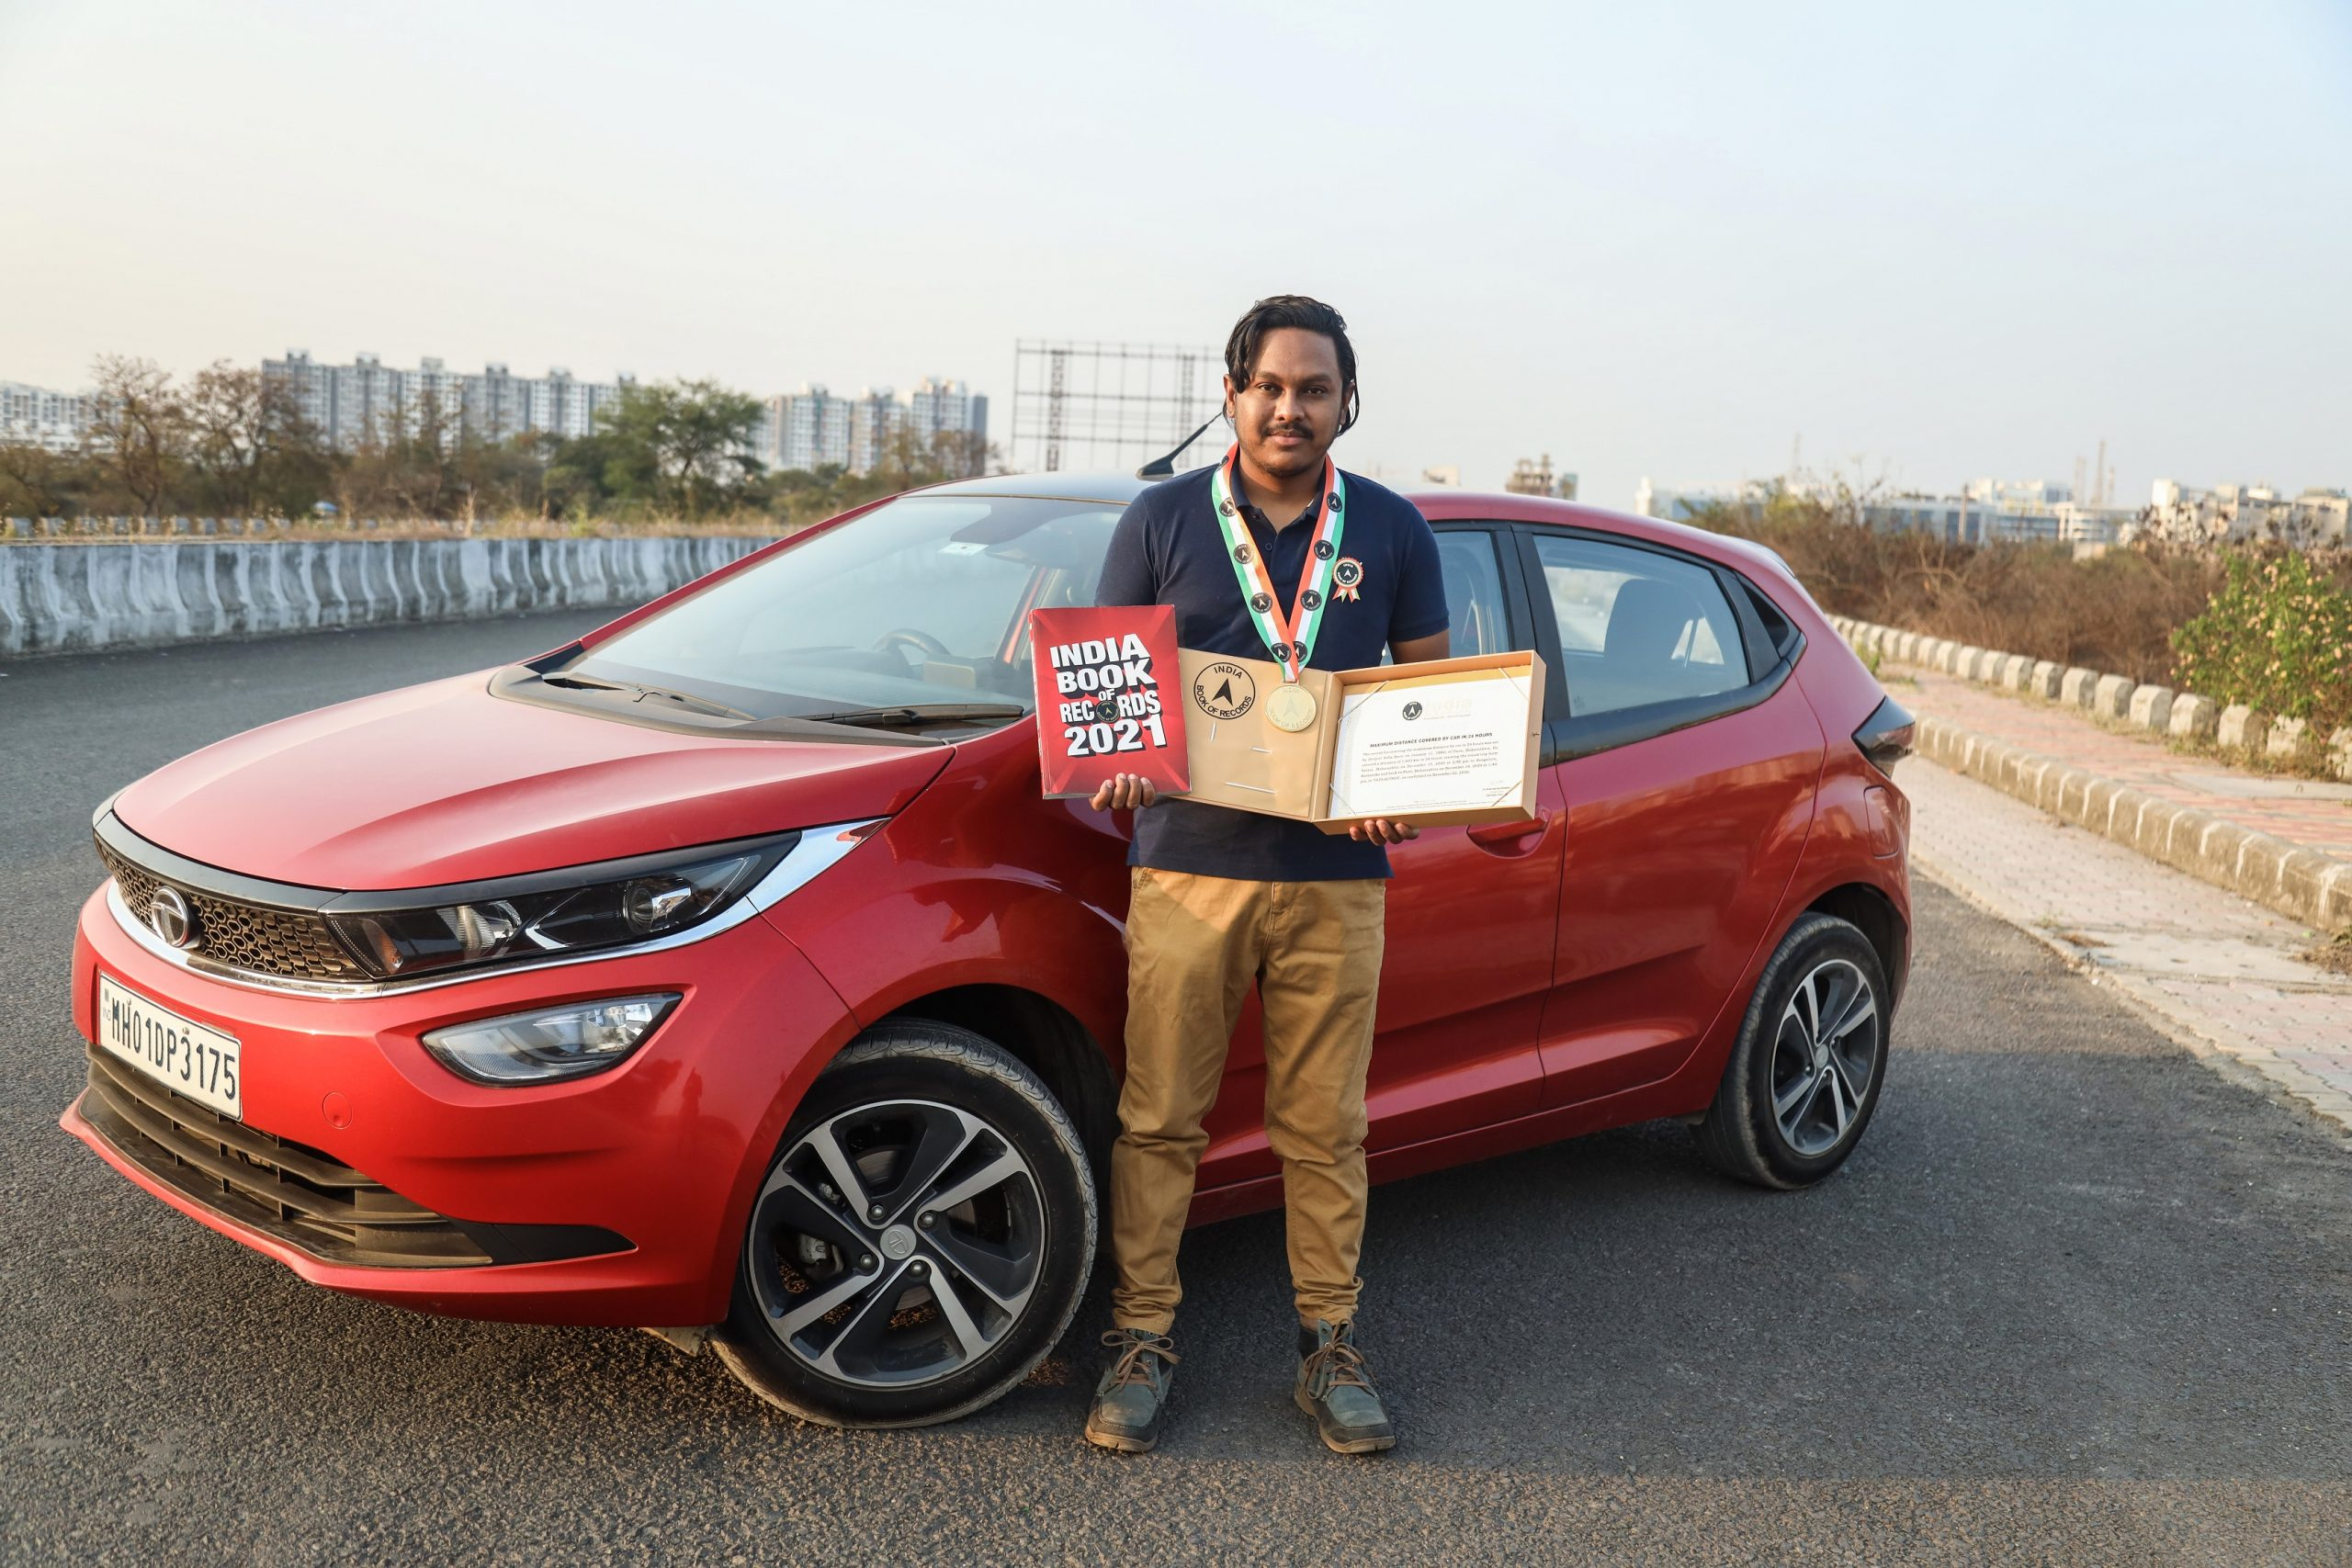 Devjit Saha along with the Tata Altroz post getting felicitated by The India Book of Records for covering the maximum distance recorded by a passenger car in 24 hrs